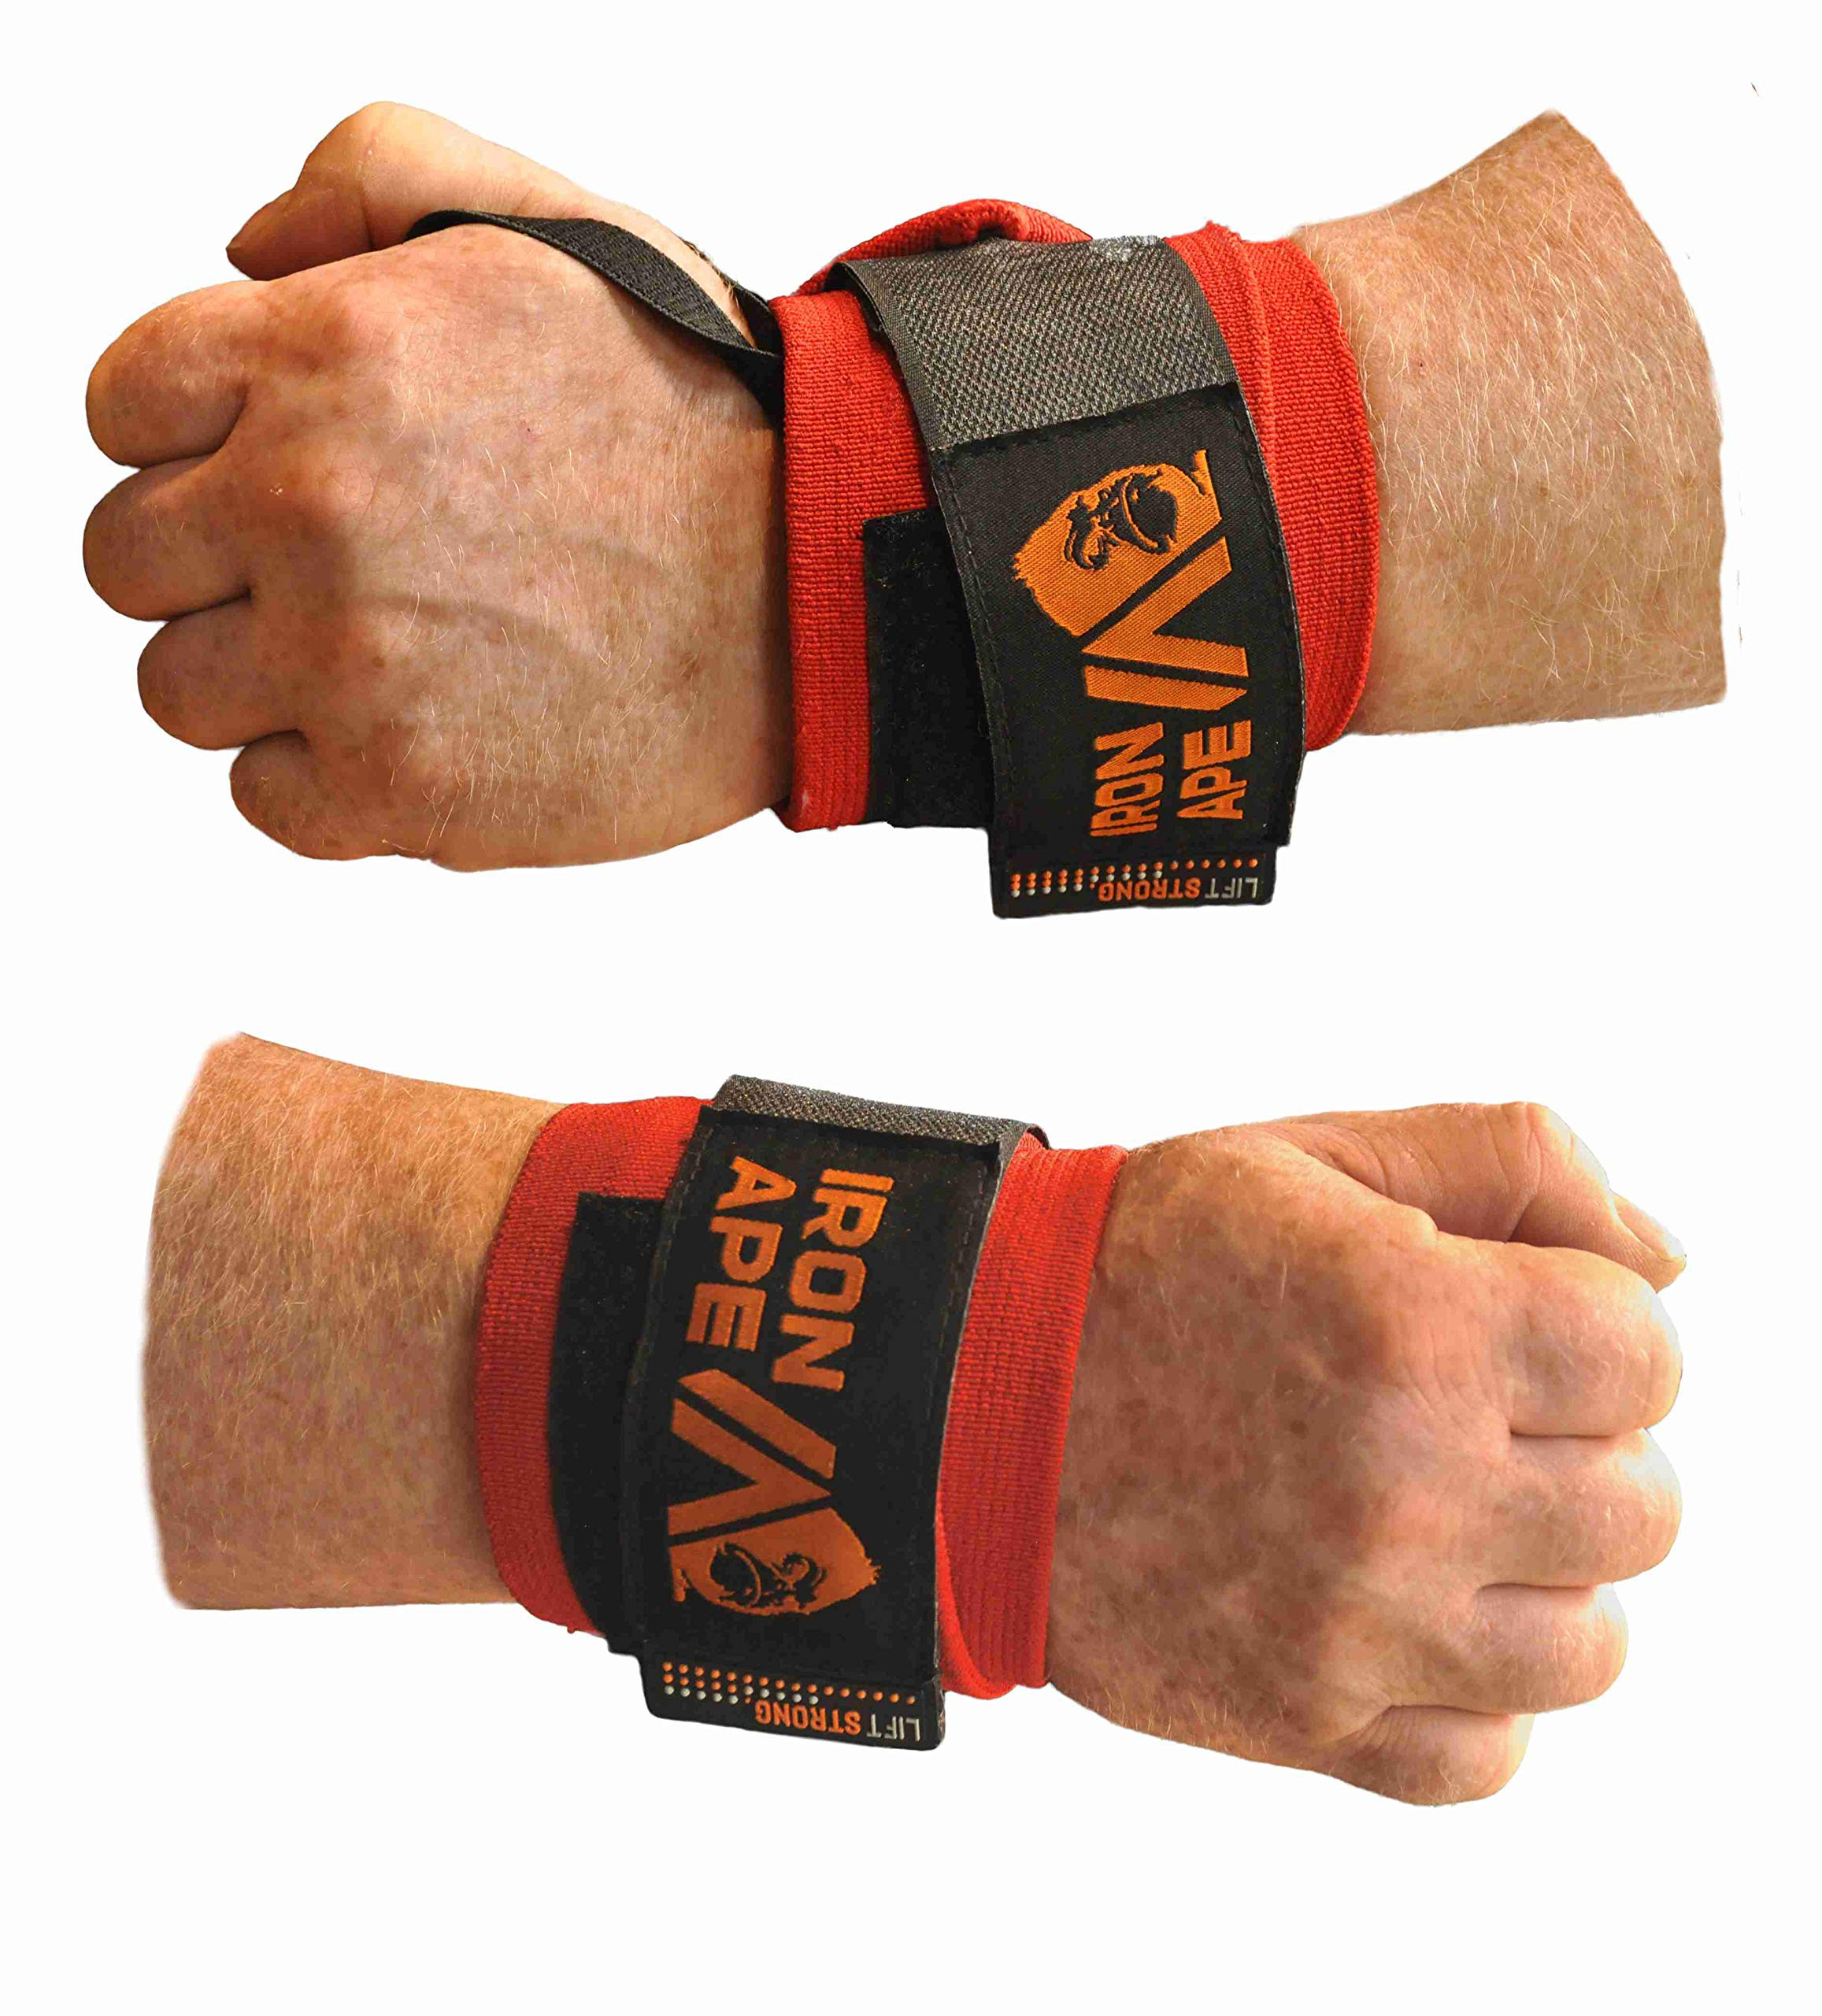 IRON APE Extra Stiff 24'' Powerlifting Wrist Wraps for Weight Lifting, and Bodybuilding. New, Improved Design for Men and Women.